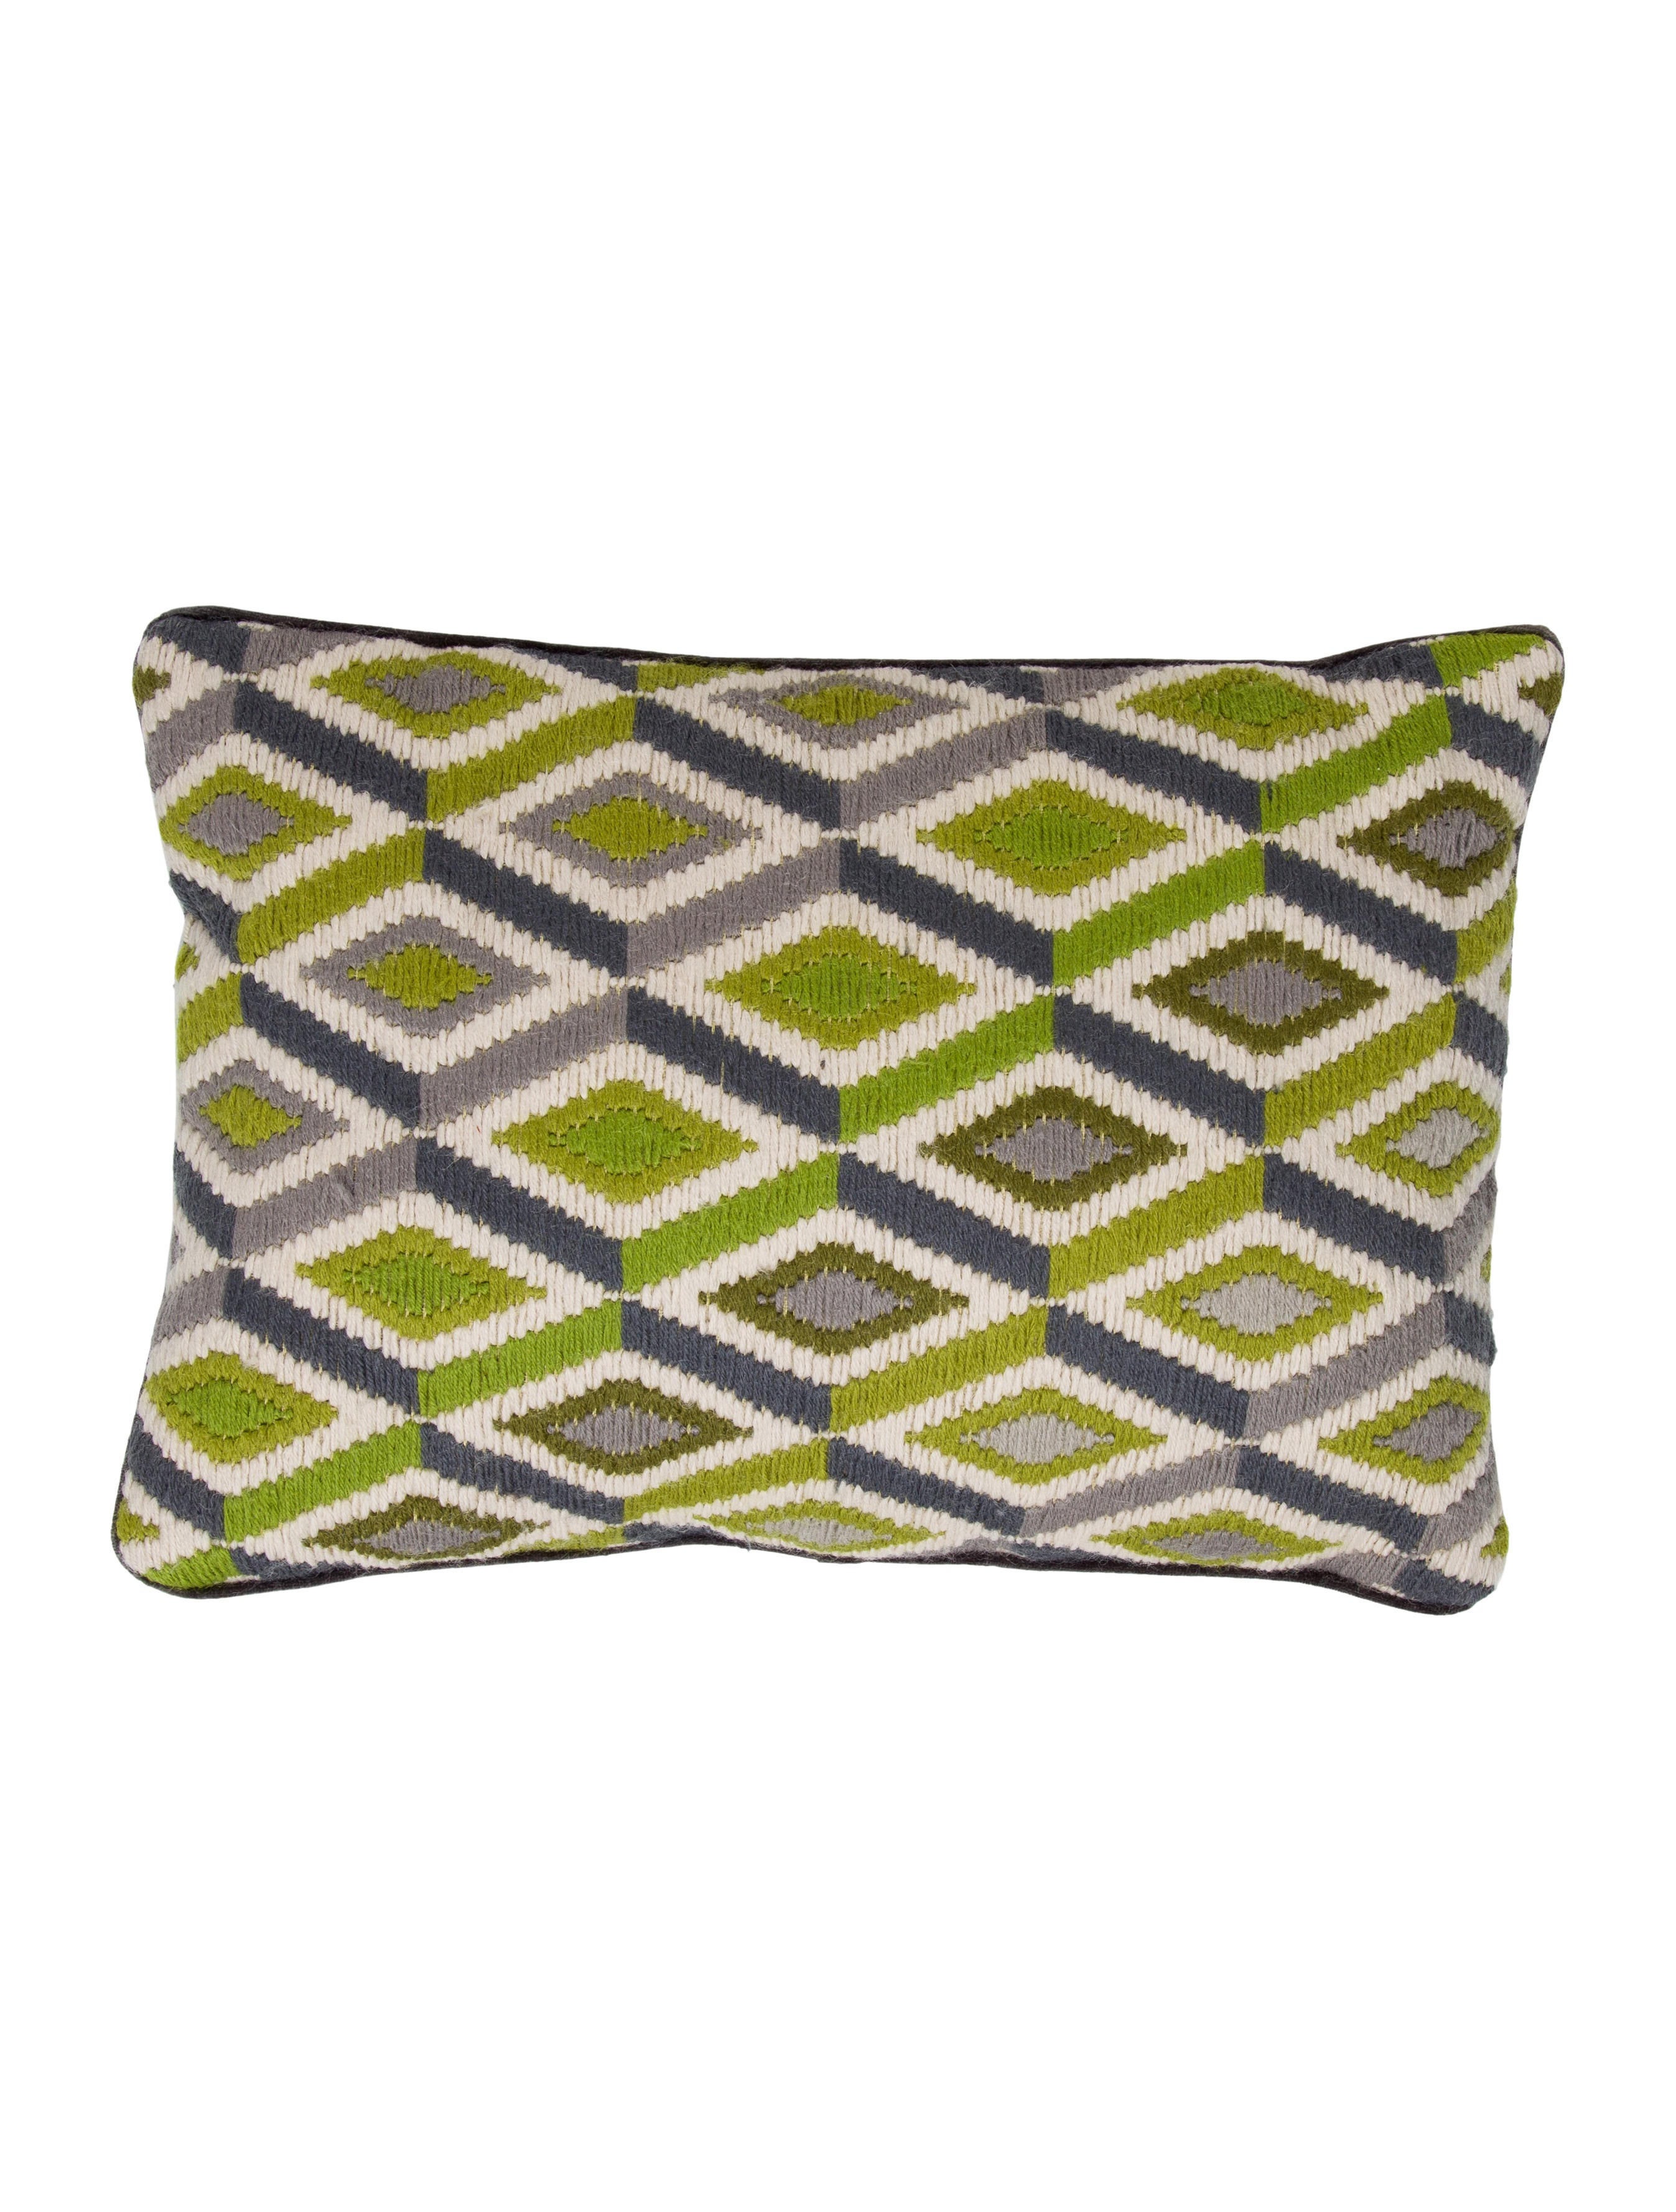 Throw Pillows Justice : Jonathan Adler Ikat Throw Pillow - Bedding And Bath - JTADL20750 The RealReal